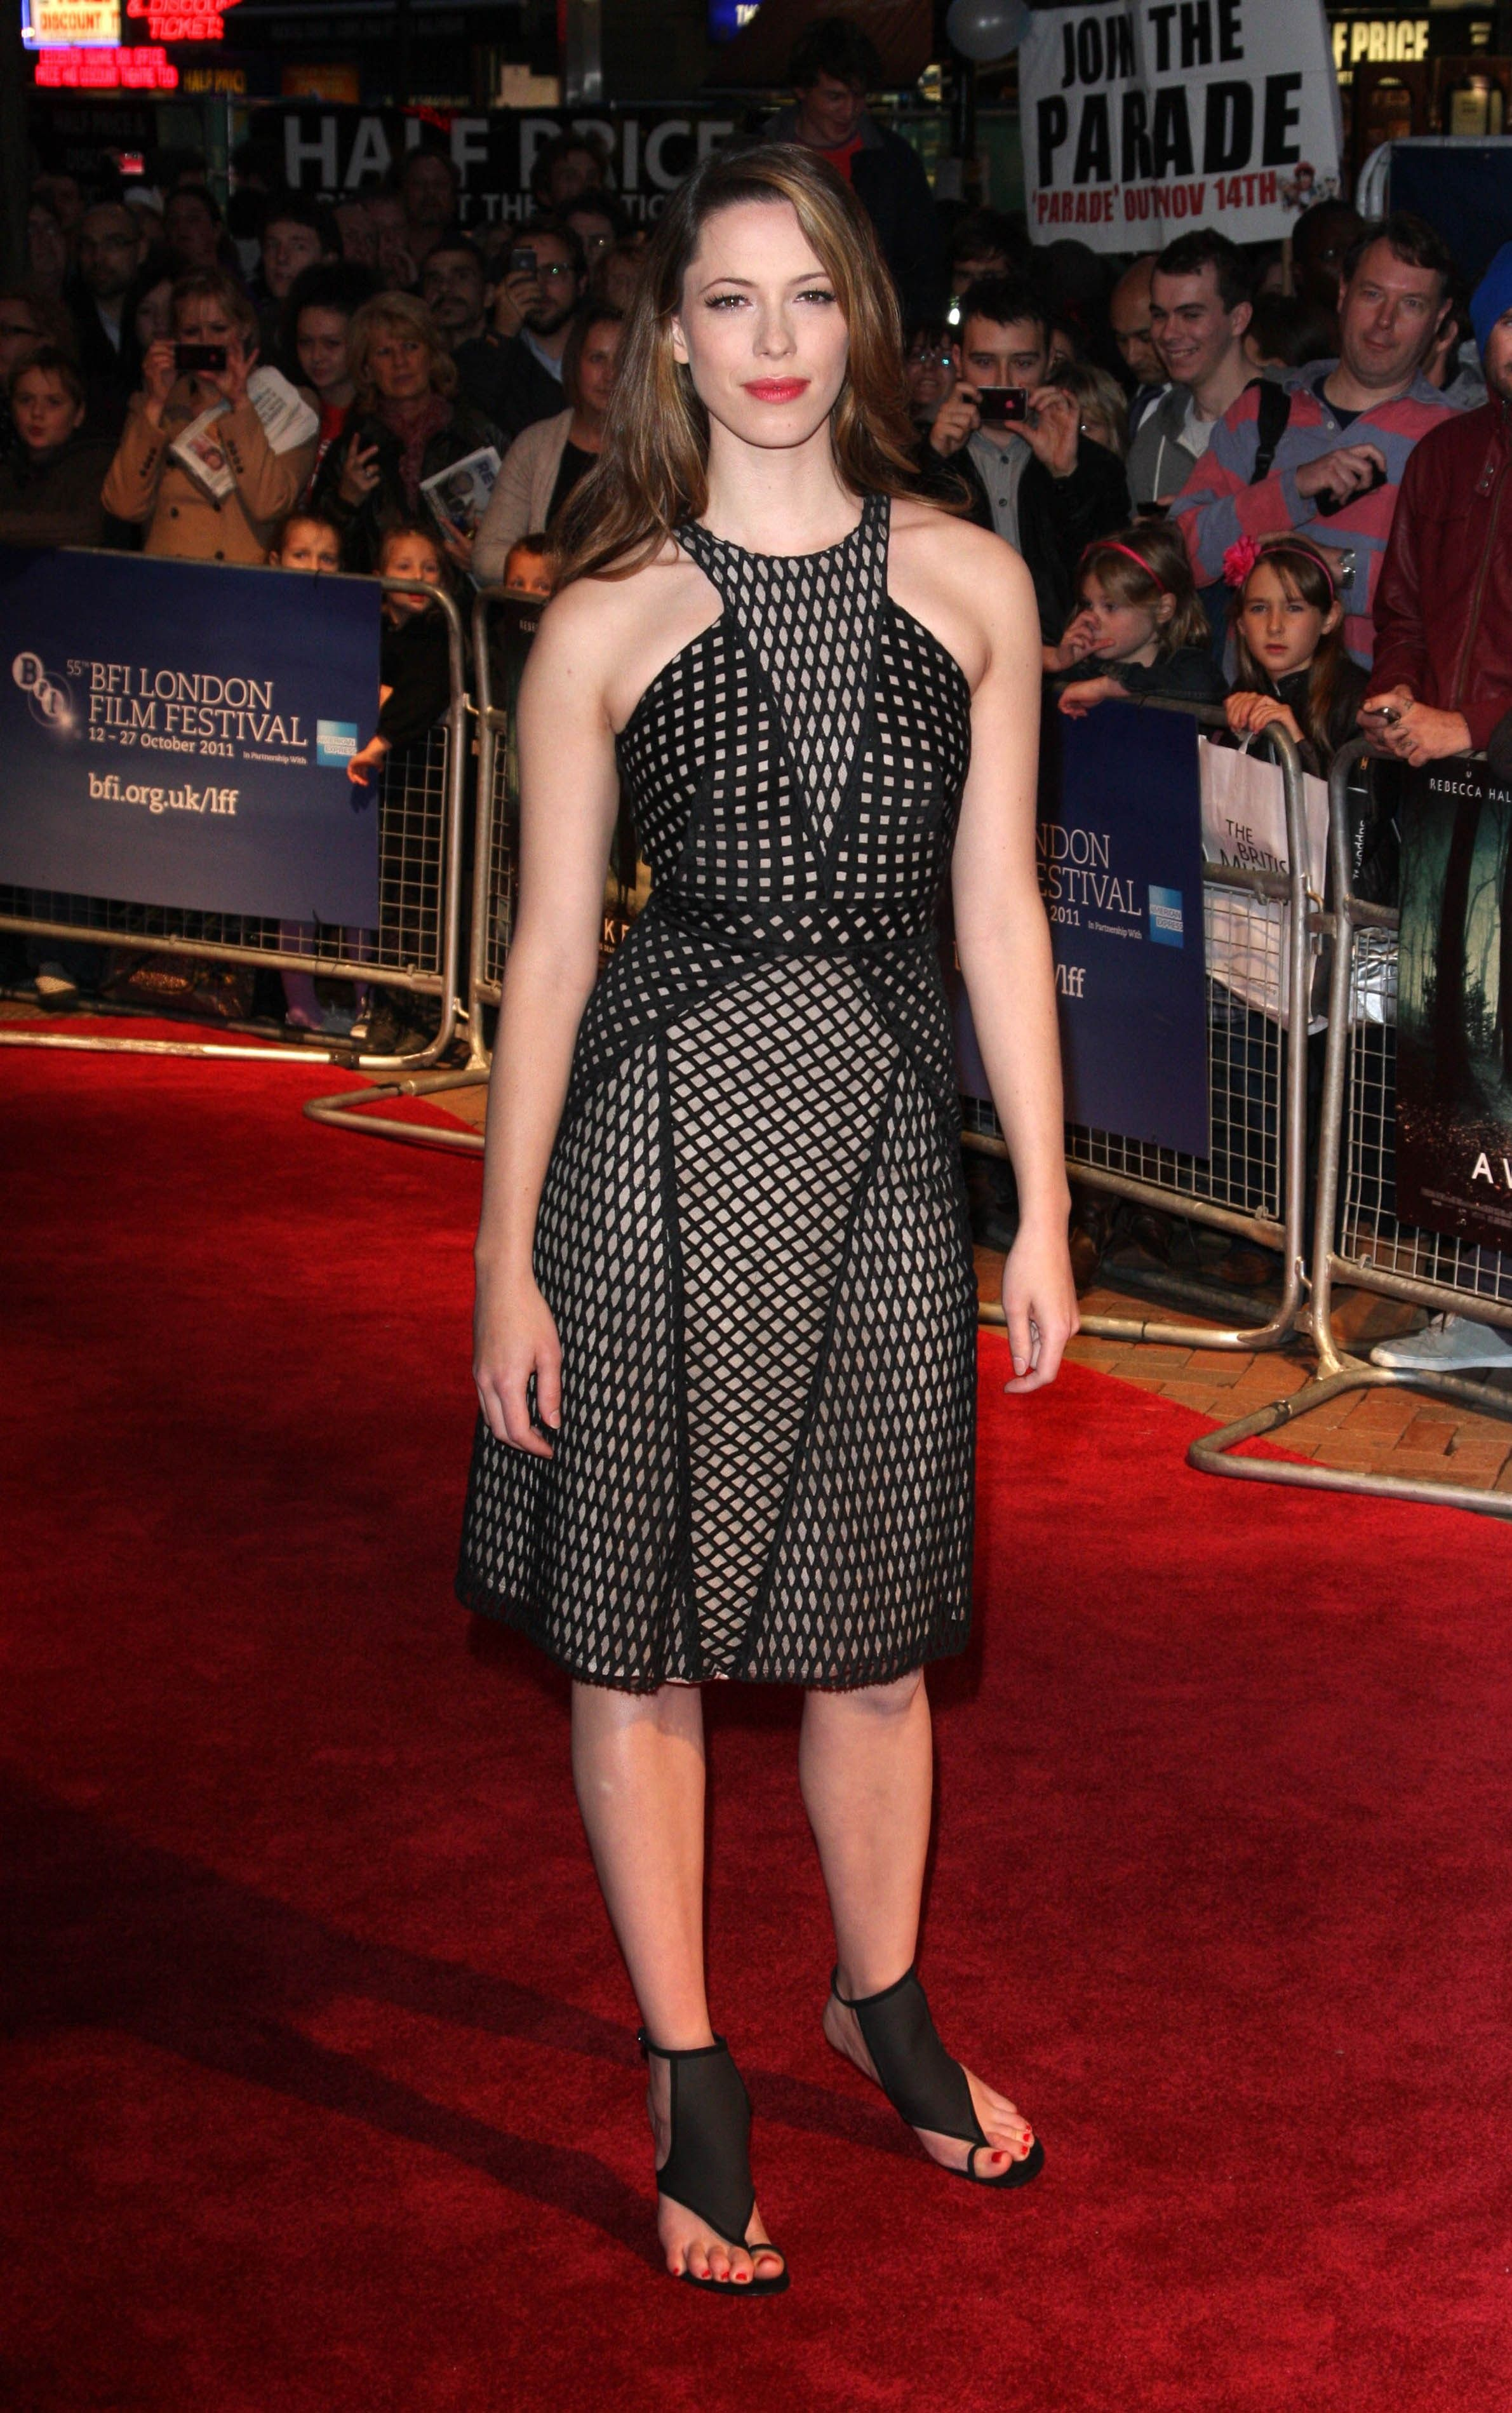 Rebecca Hall (born 1982 (dual British and American citizenship)